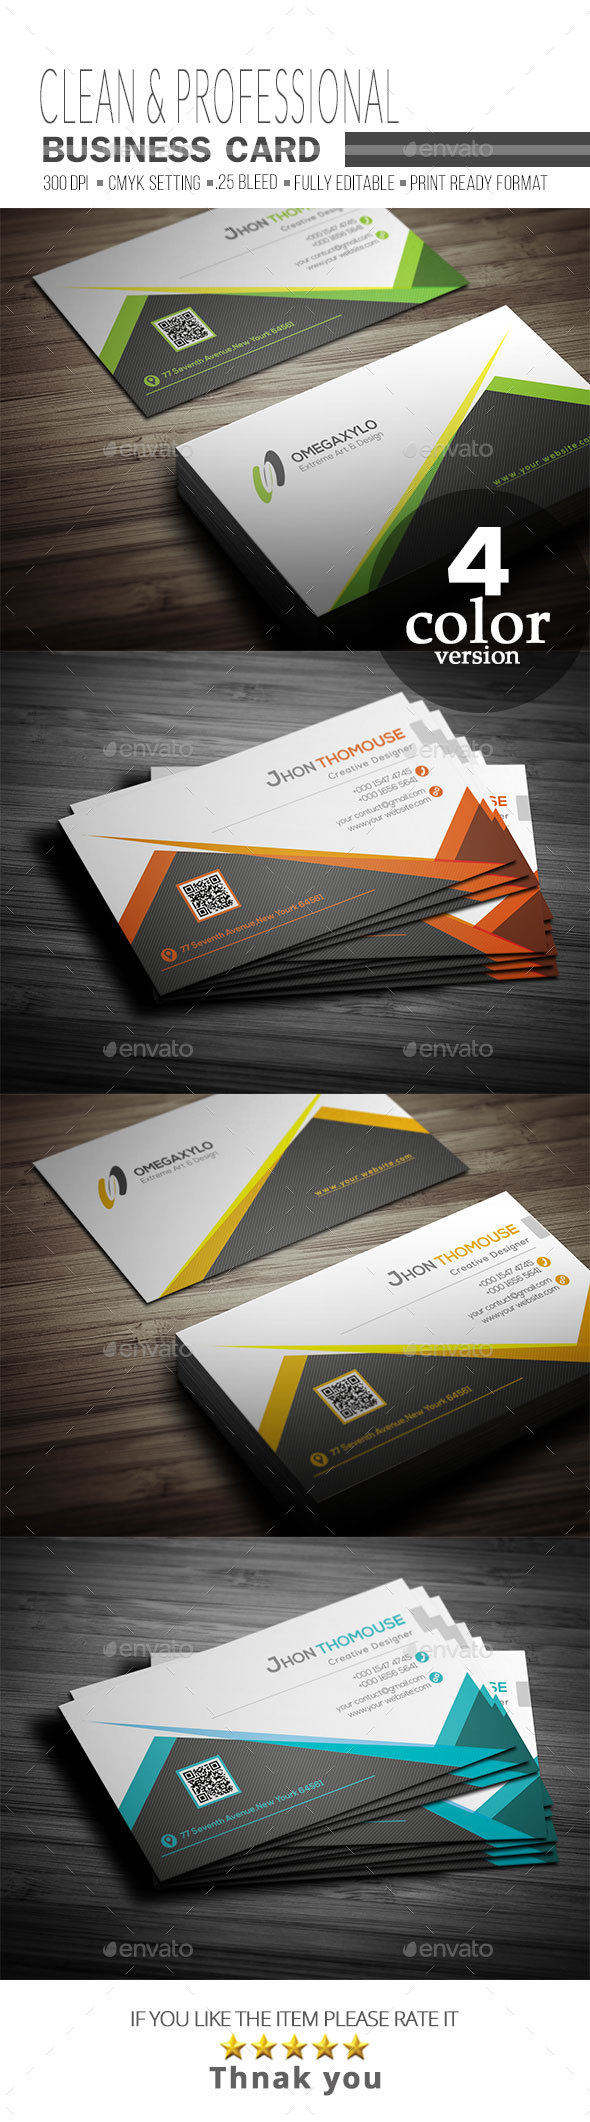 Business Cards Templates Microsoft